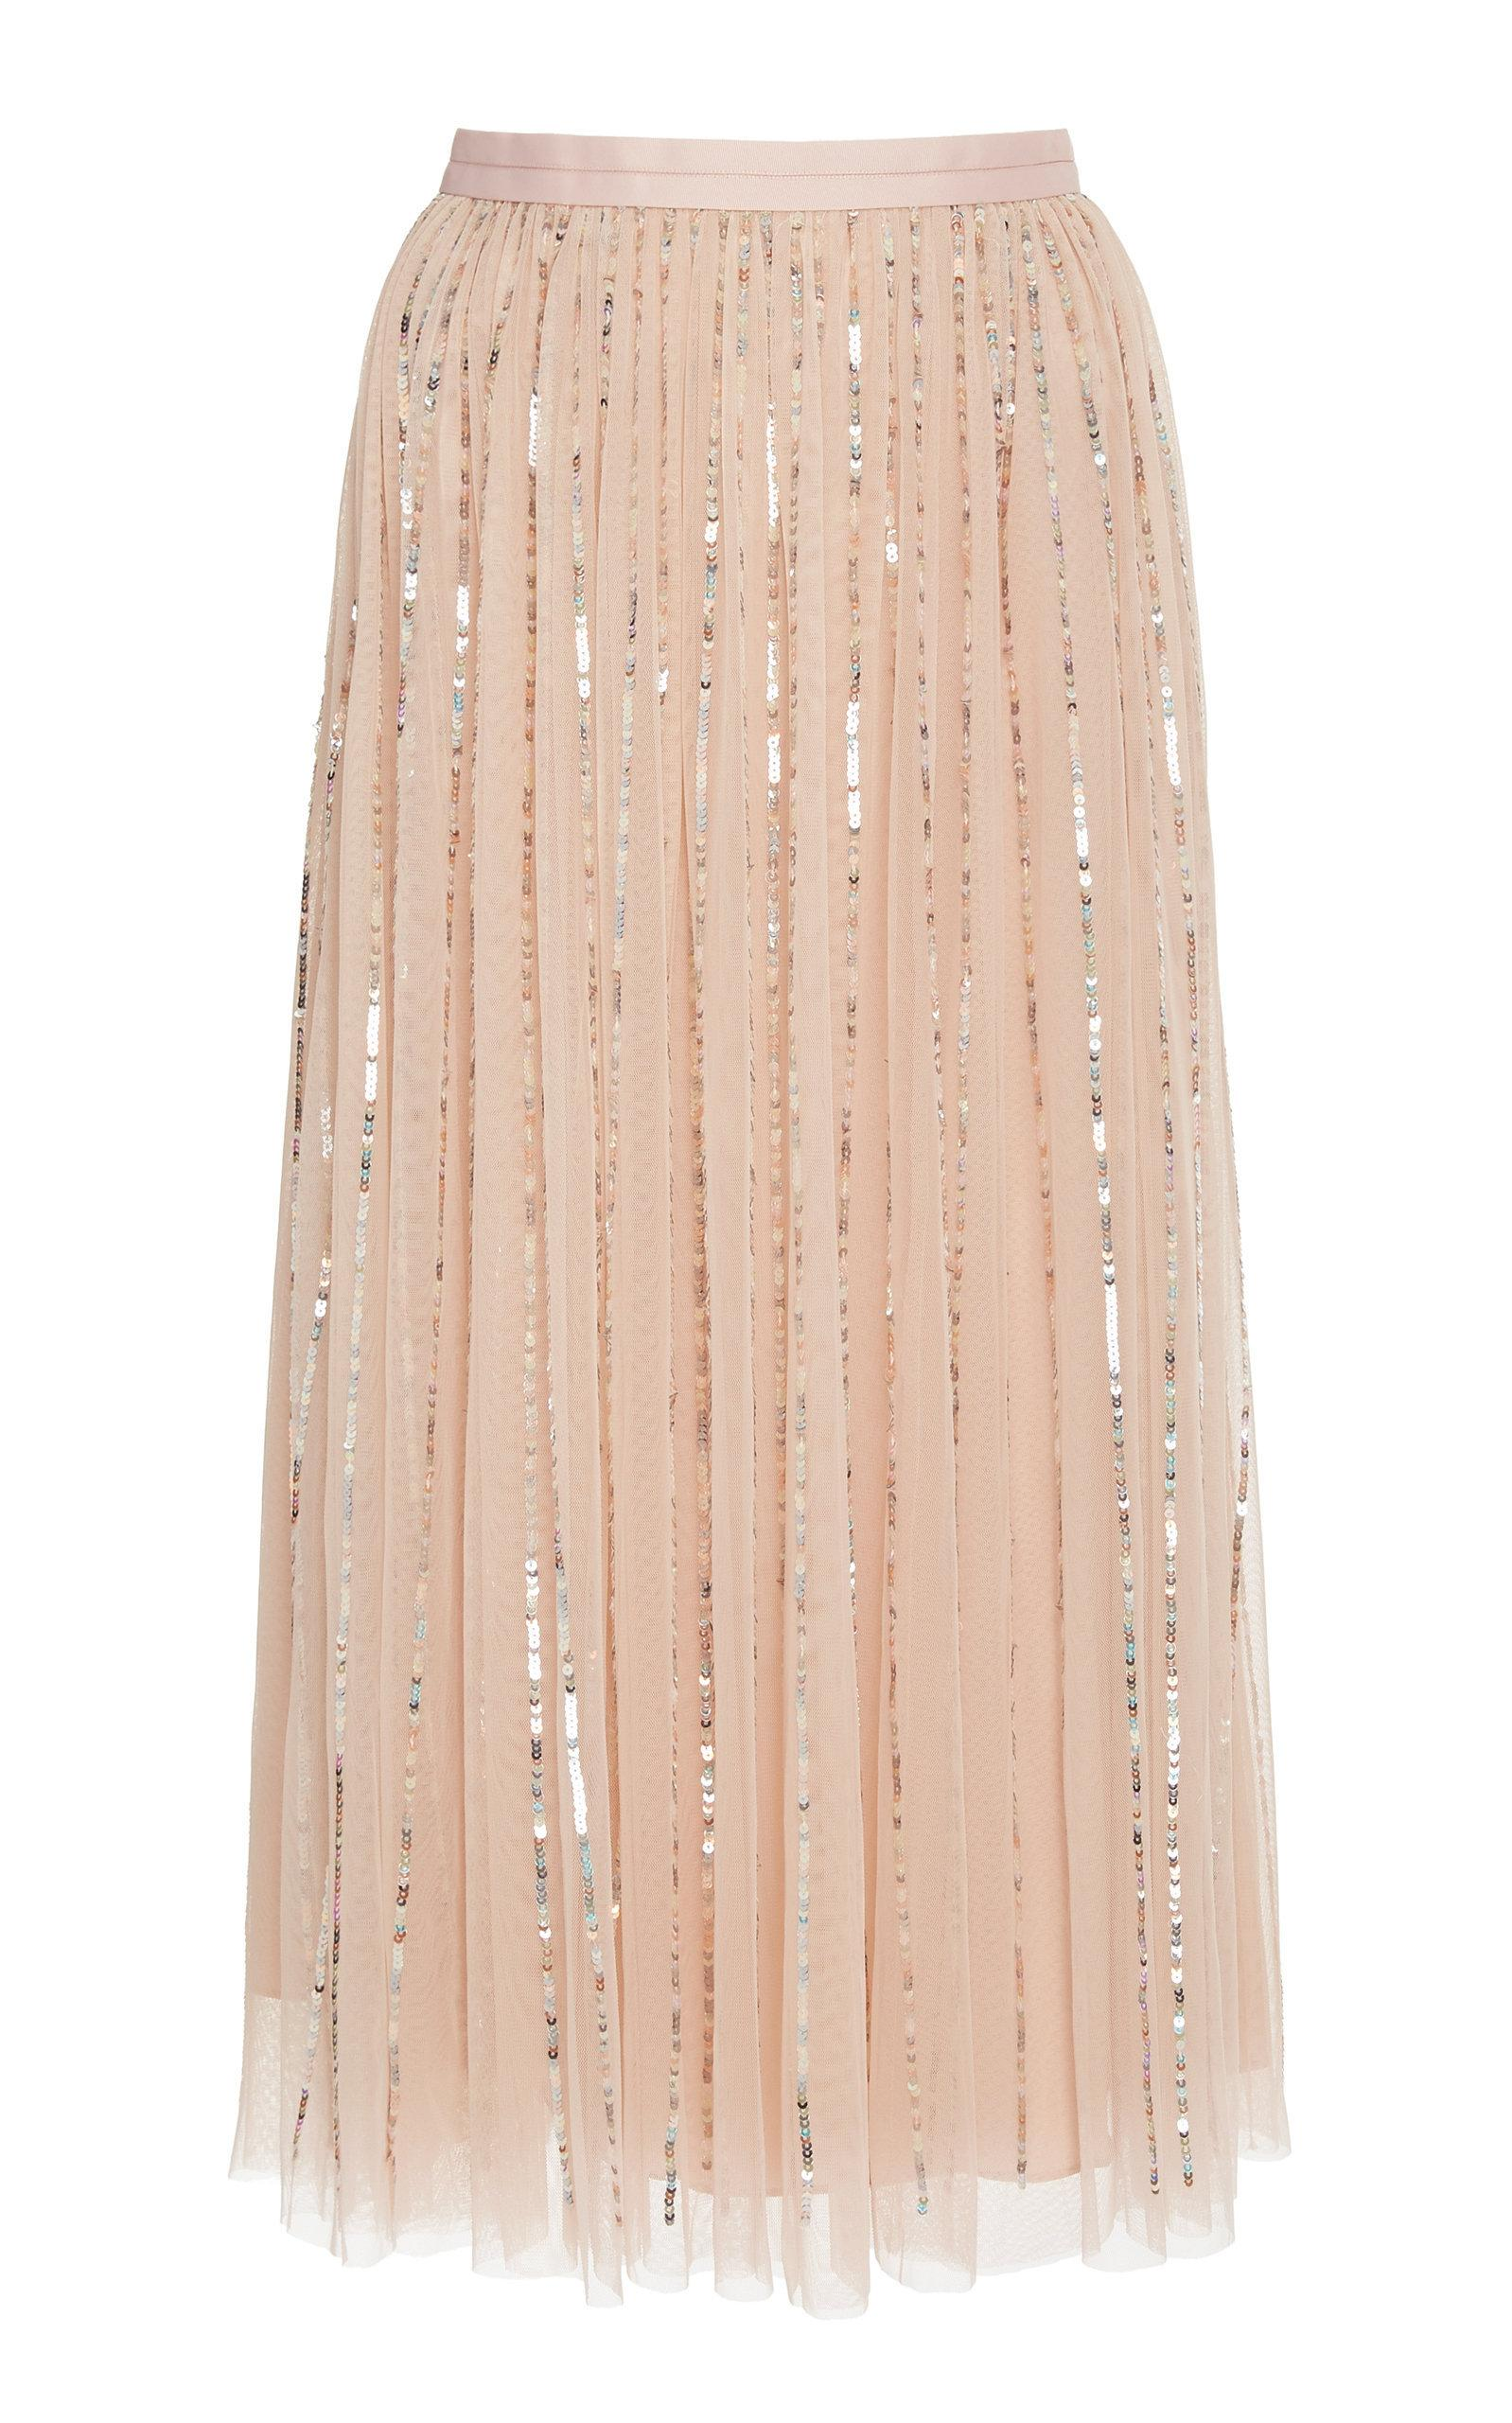 65035158a3 Needle & Thread Midaxi Shimmer Sequin Skirt In Pink | ModeSens